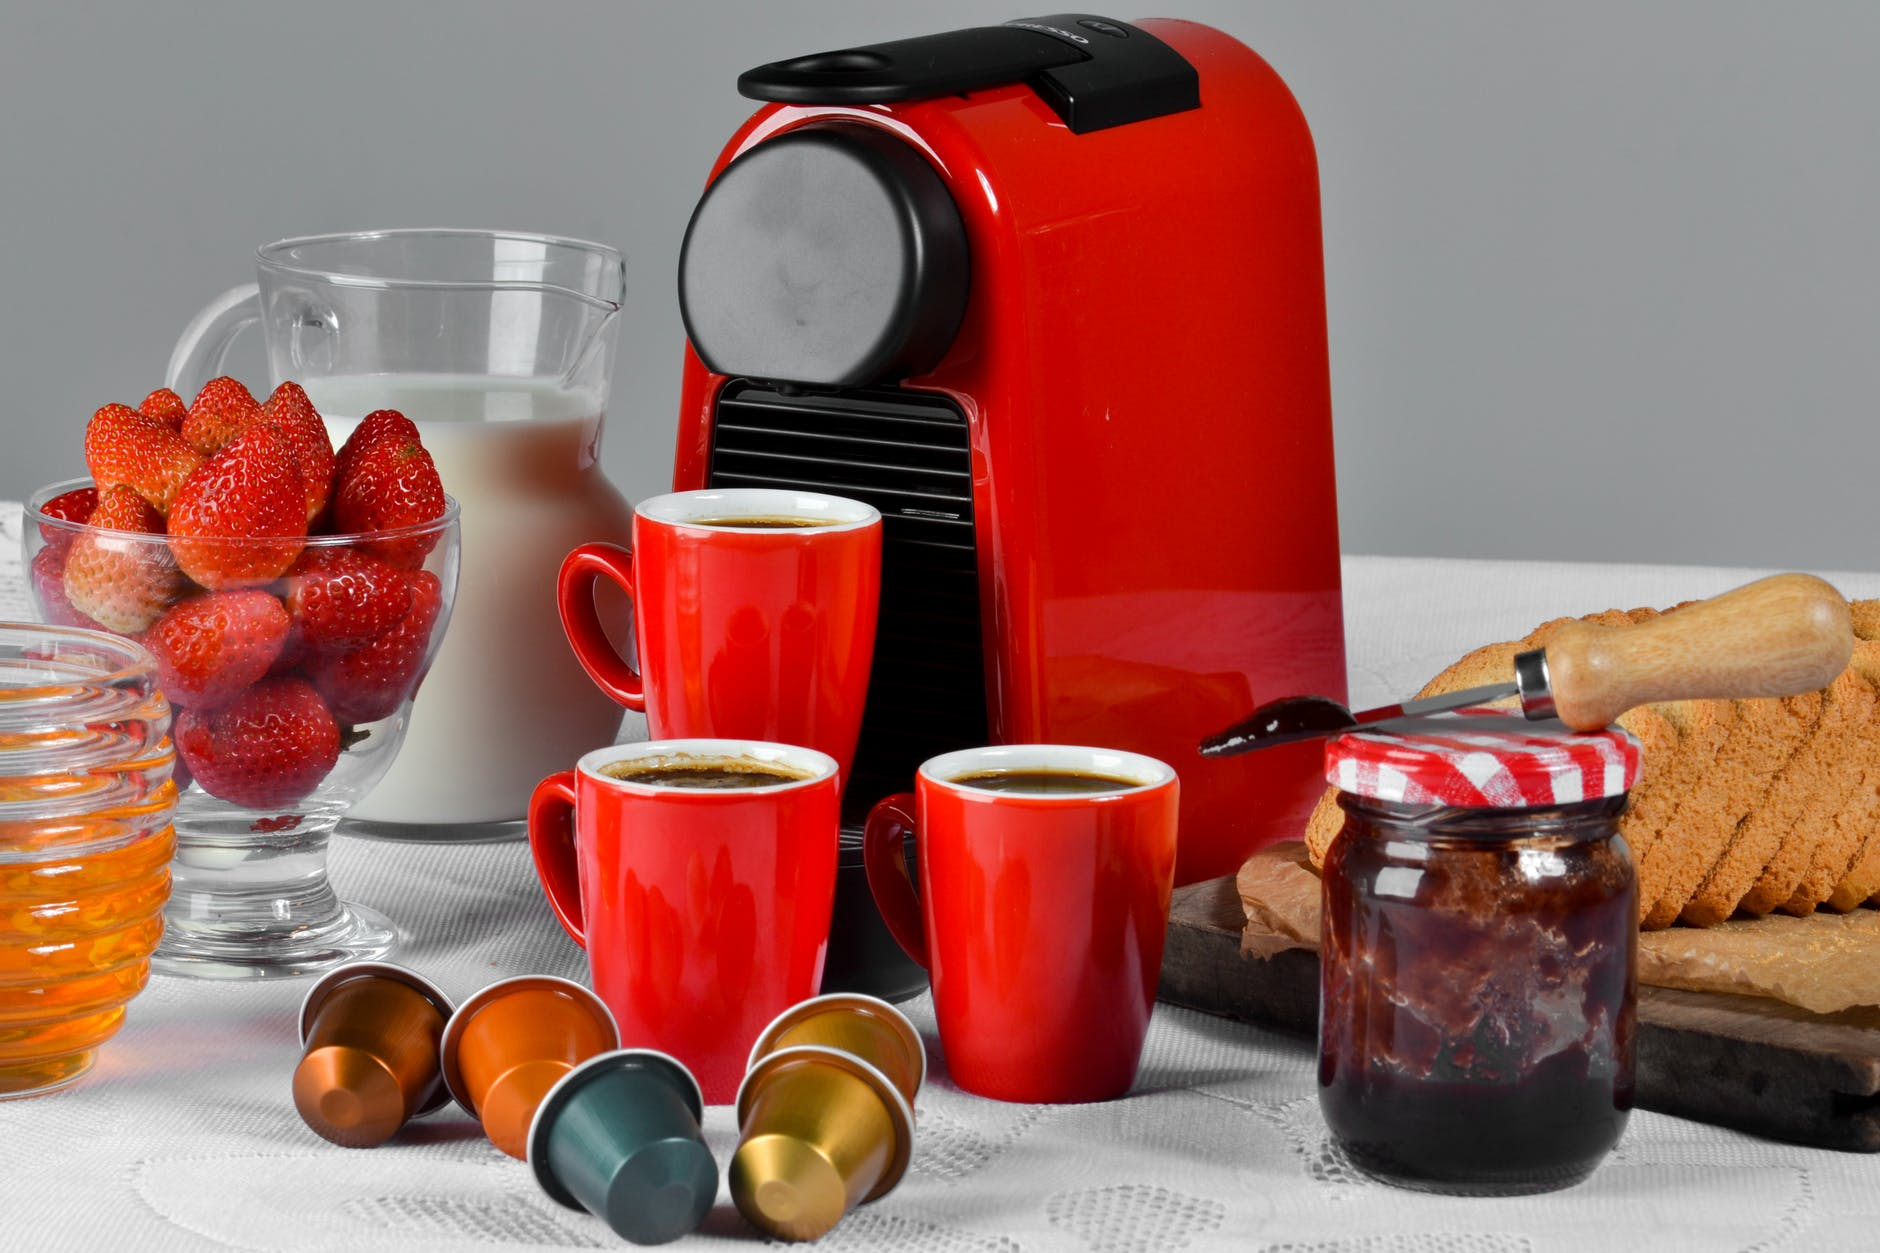 Red and black espresso machine